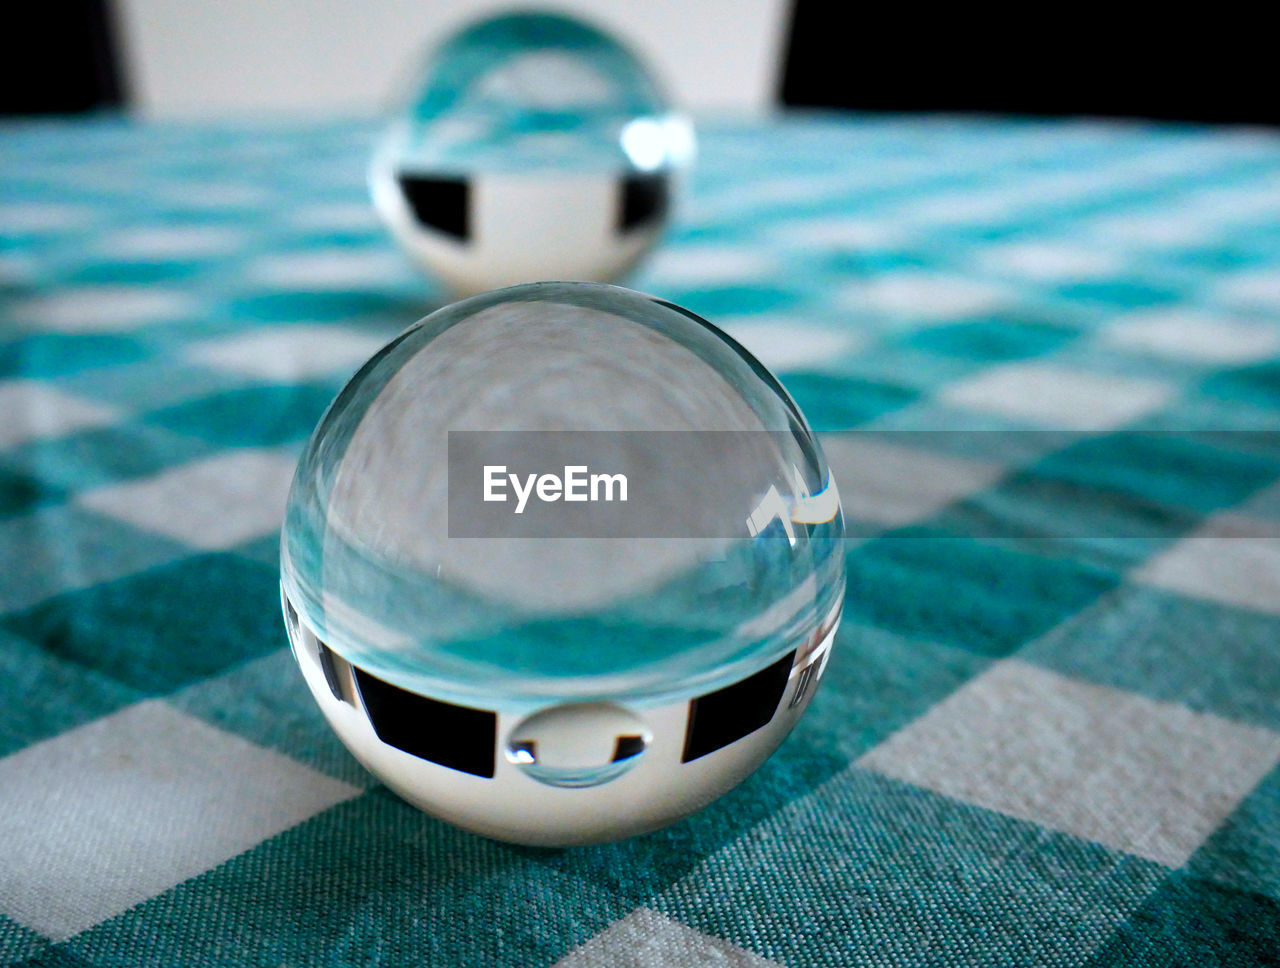 close-up, sphere, still life, crystal ball, table, ball, indoors, reflection, focus on foreground, no people, glass - material, selective focus, pattern, day, high angle view, transparent, shape, design, tablecloth, single object, silver colored, electric lamp, clean